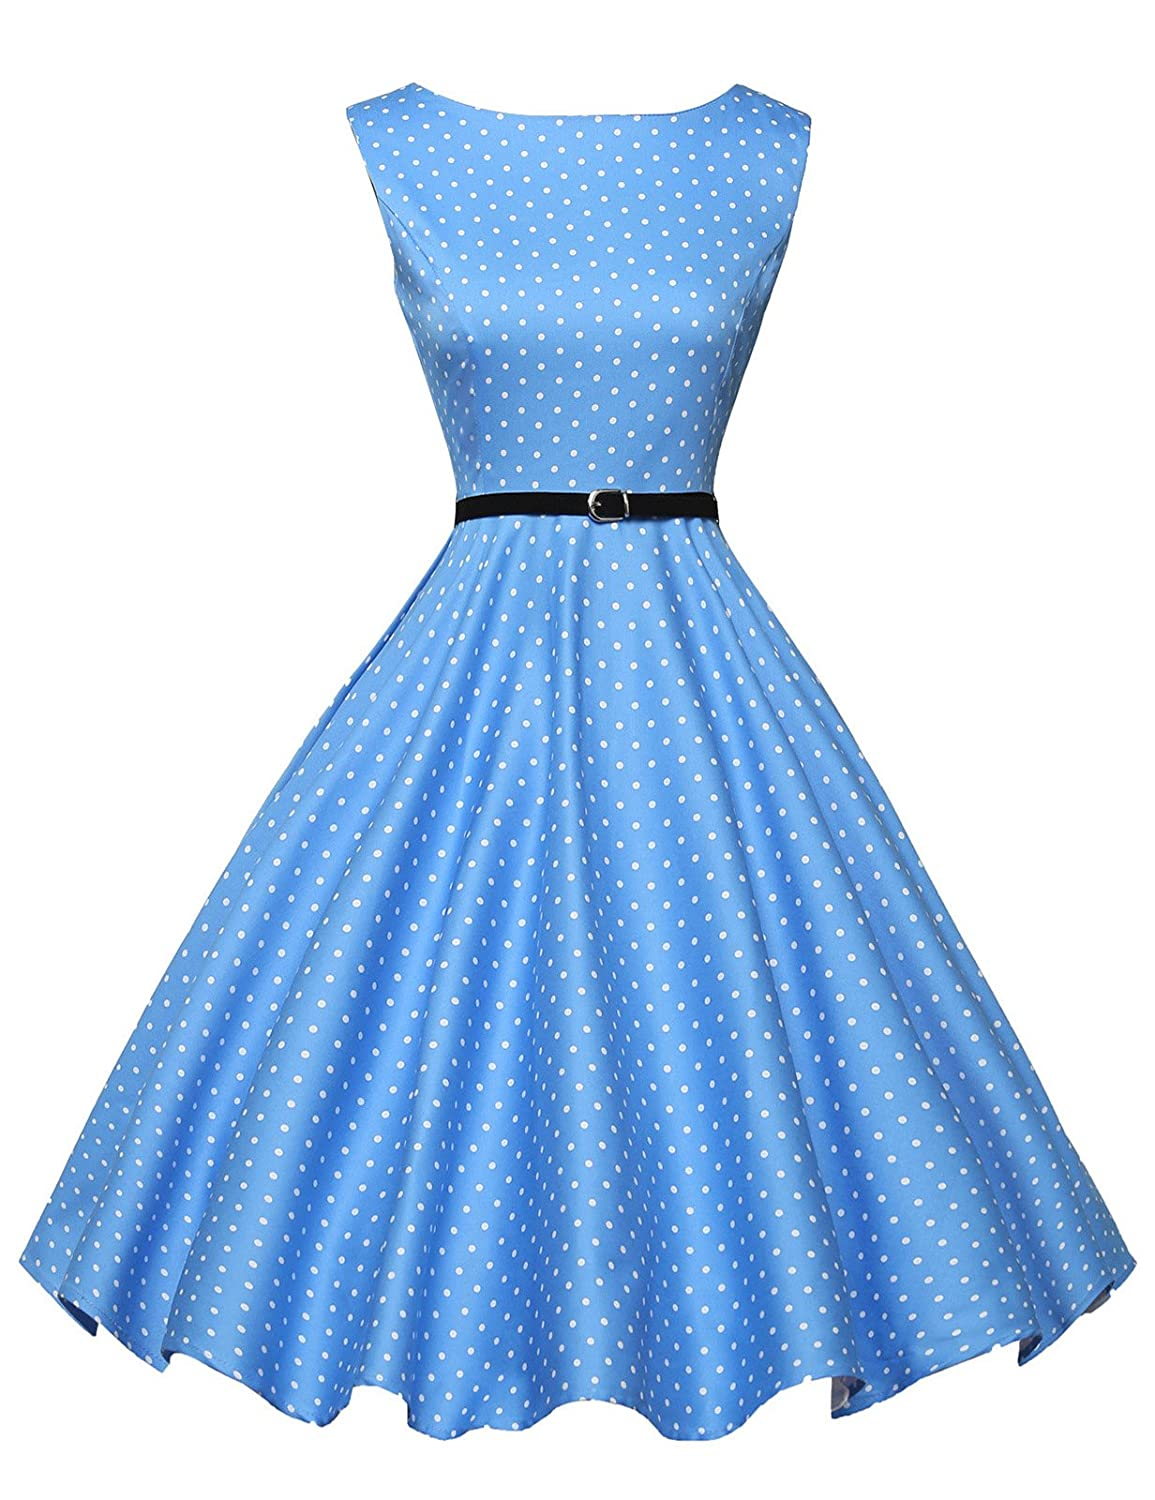 Plus Size Vintage Dresses, Plus Size Retro Dresses GRACE KARIN BoatNeck Sleeveless Vintage Tea Dress with Belt $30.99 AT vintagedancer.com